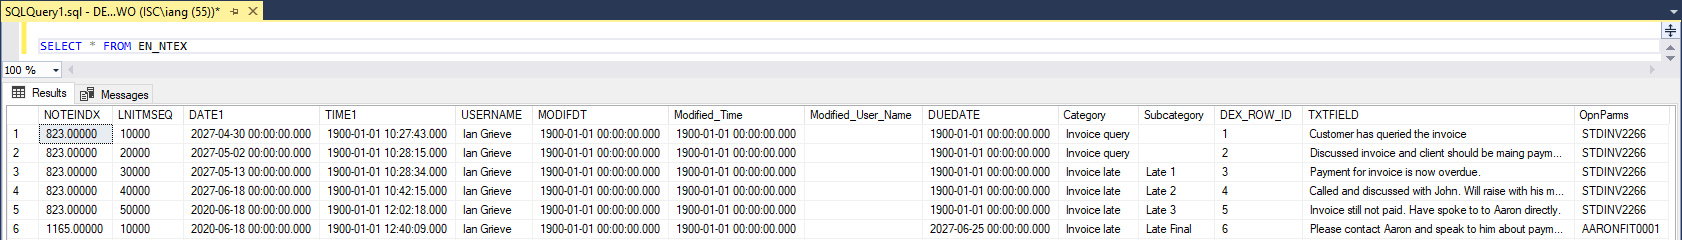 SQL Server Management Studio showing the content of the EN_NTEX table